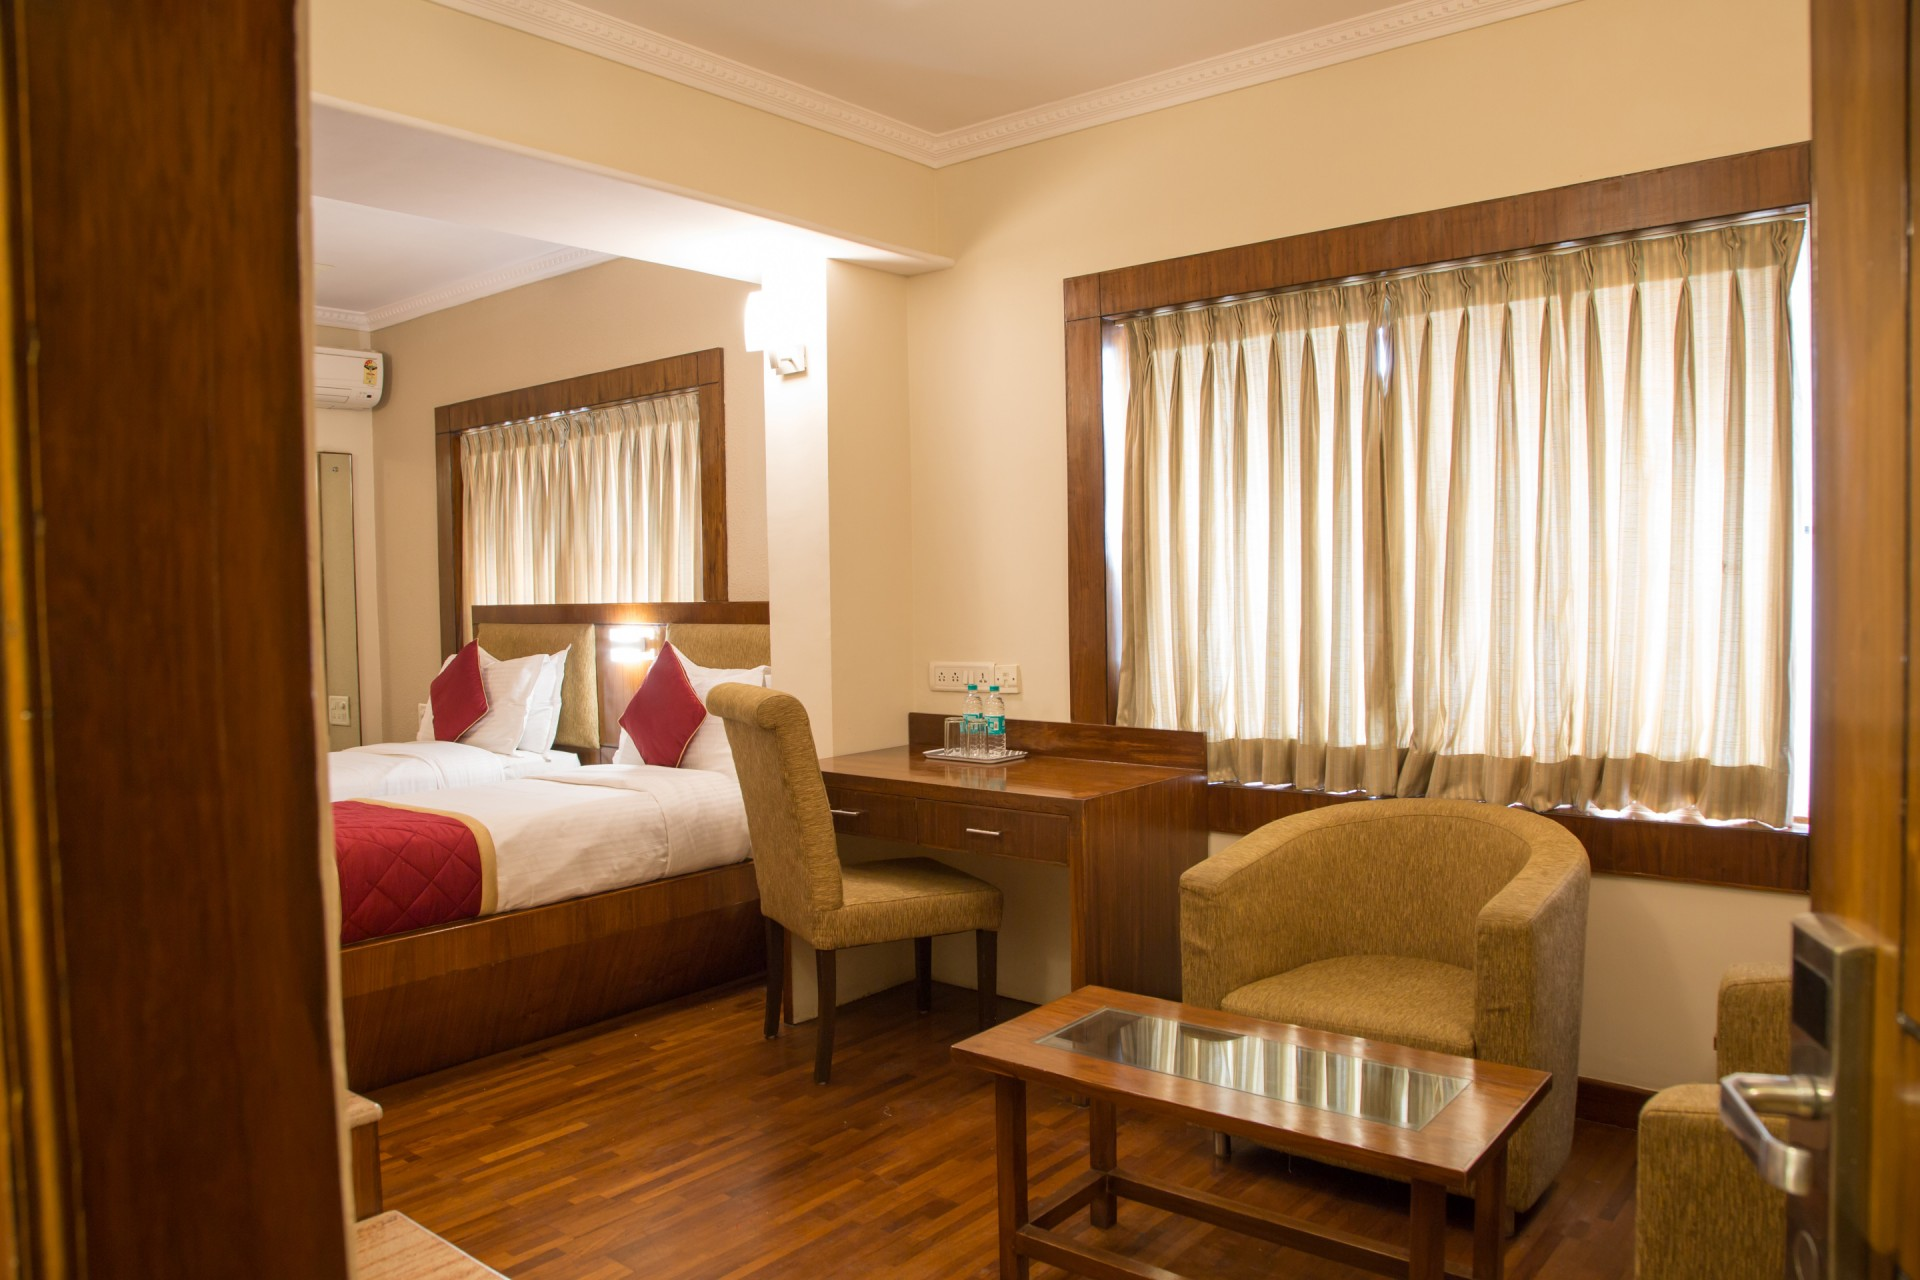 Junior Suite Room at Hotel near MG road